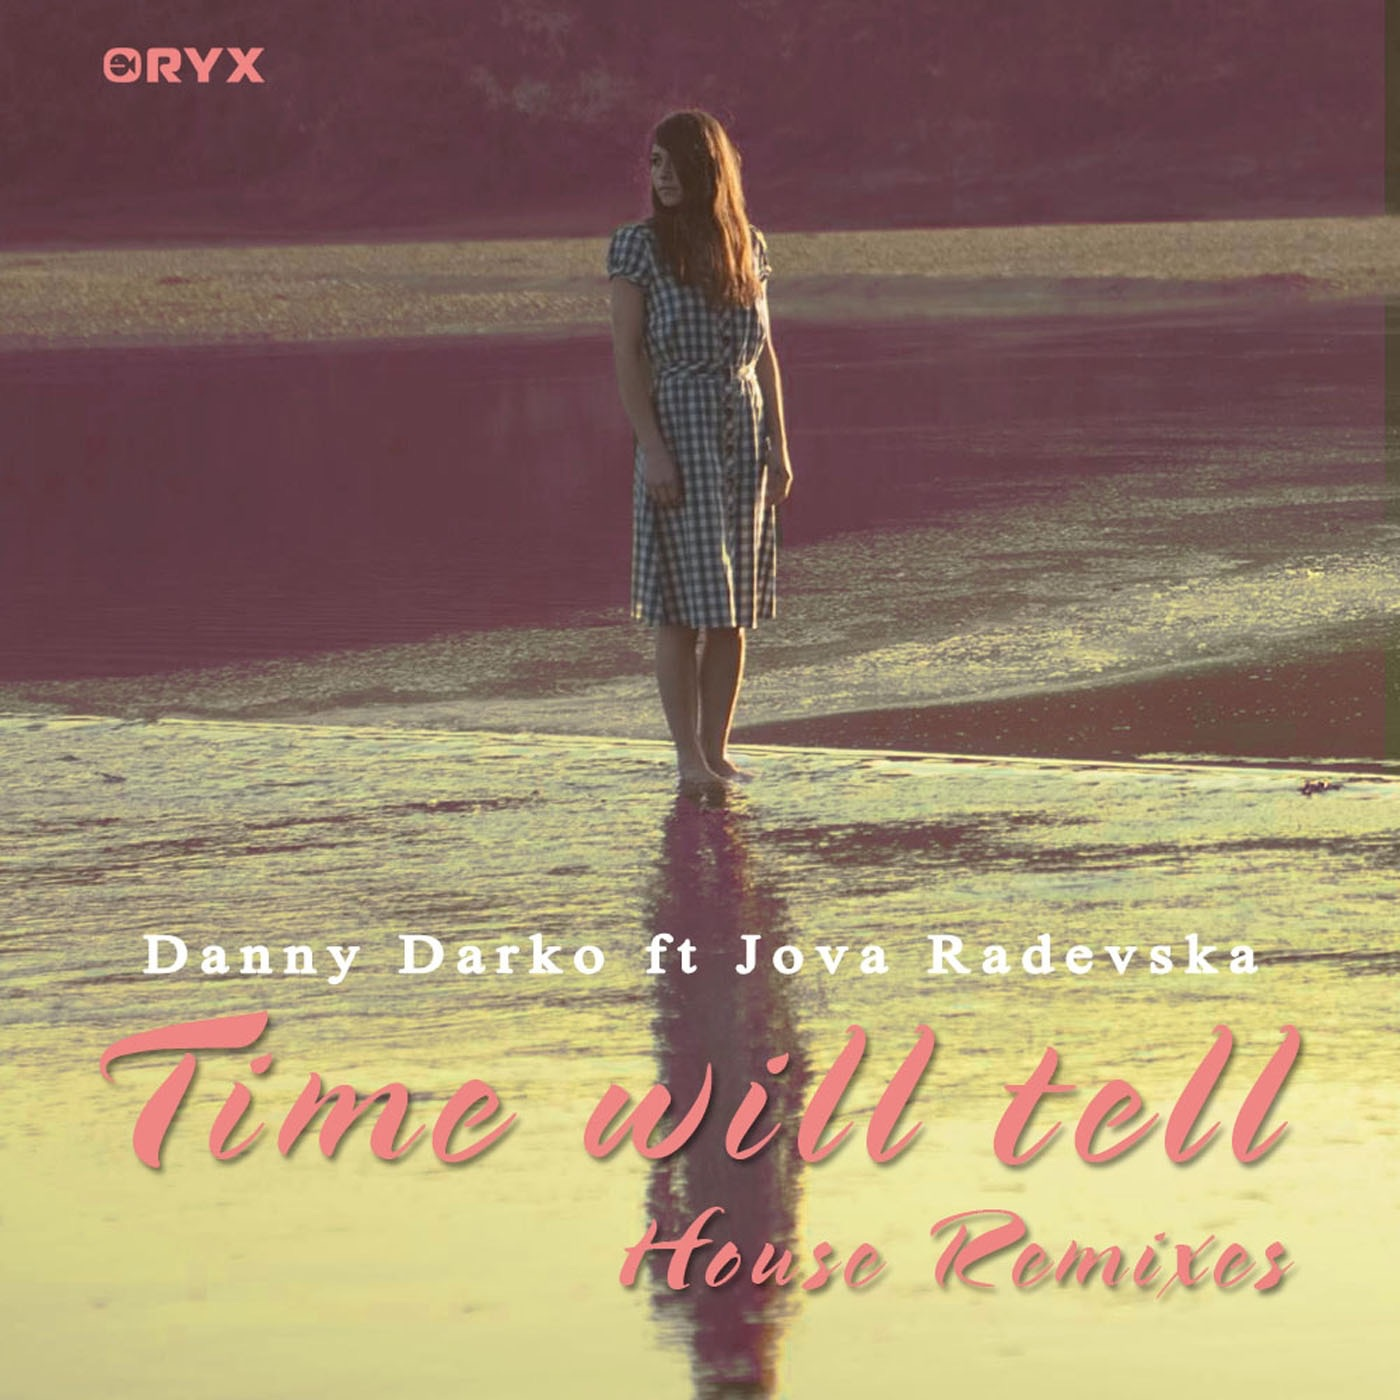 Time Will Tell House Remixes Pt. 3 (feat. Jova Radevska) - Single